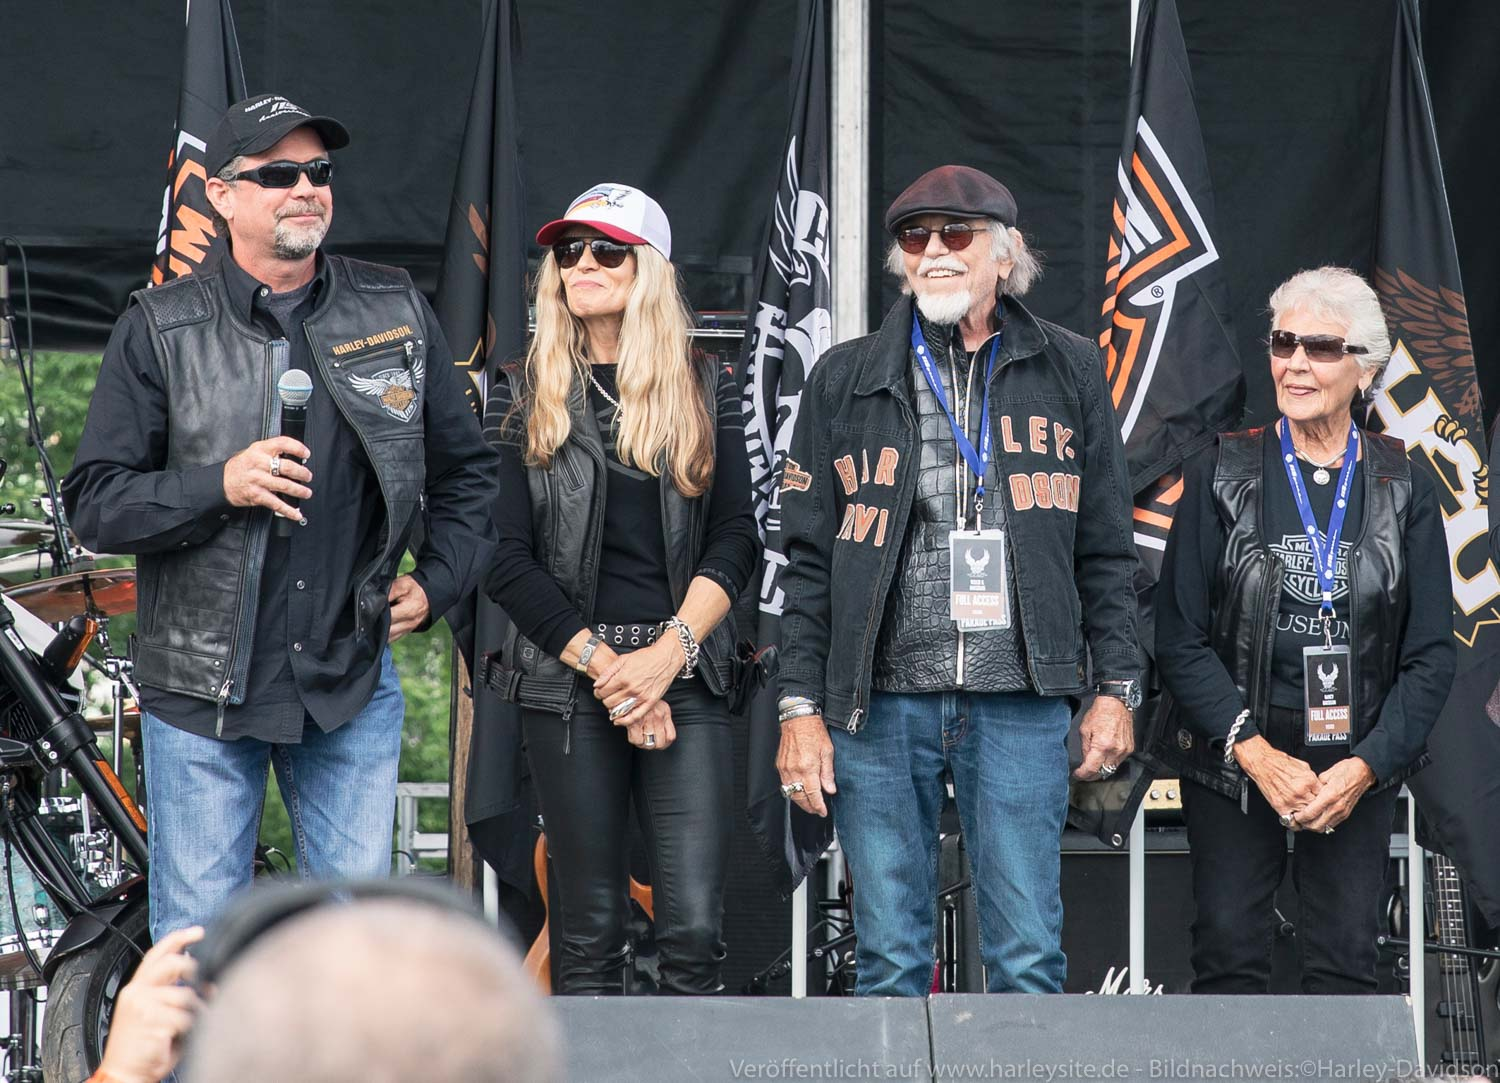 2018 Harley Davidson 115th Anniversary Celebration.